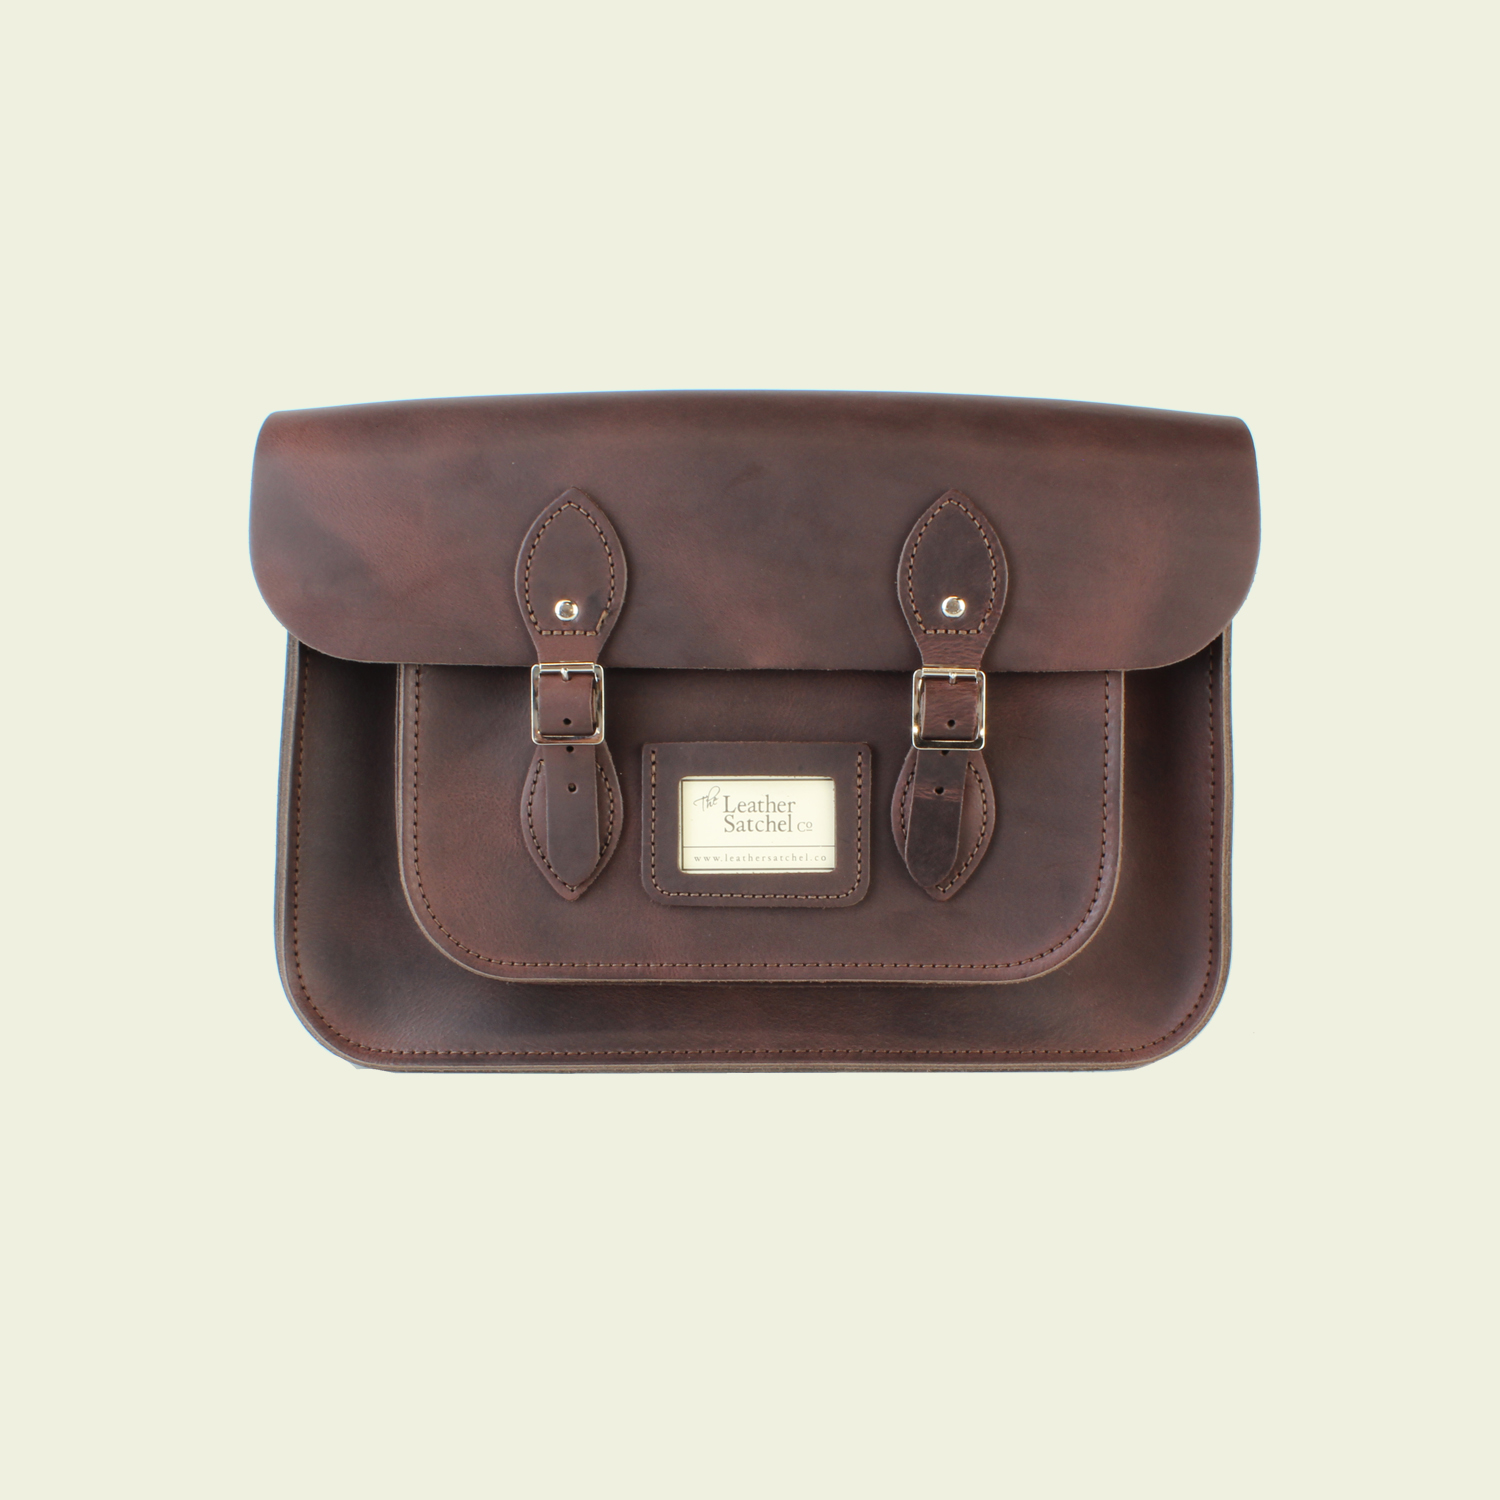 Discover the Original Satchel Maker - The Leather Satchel Co.